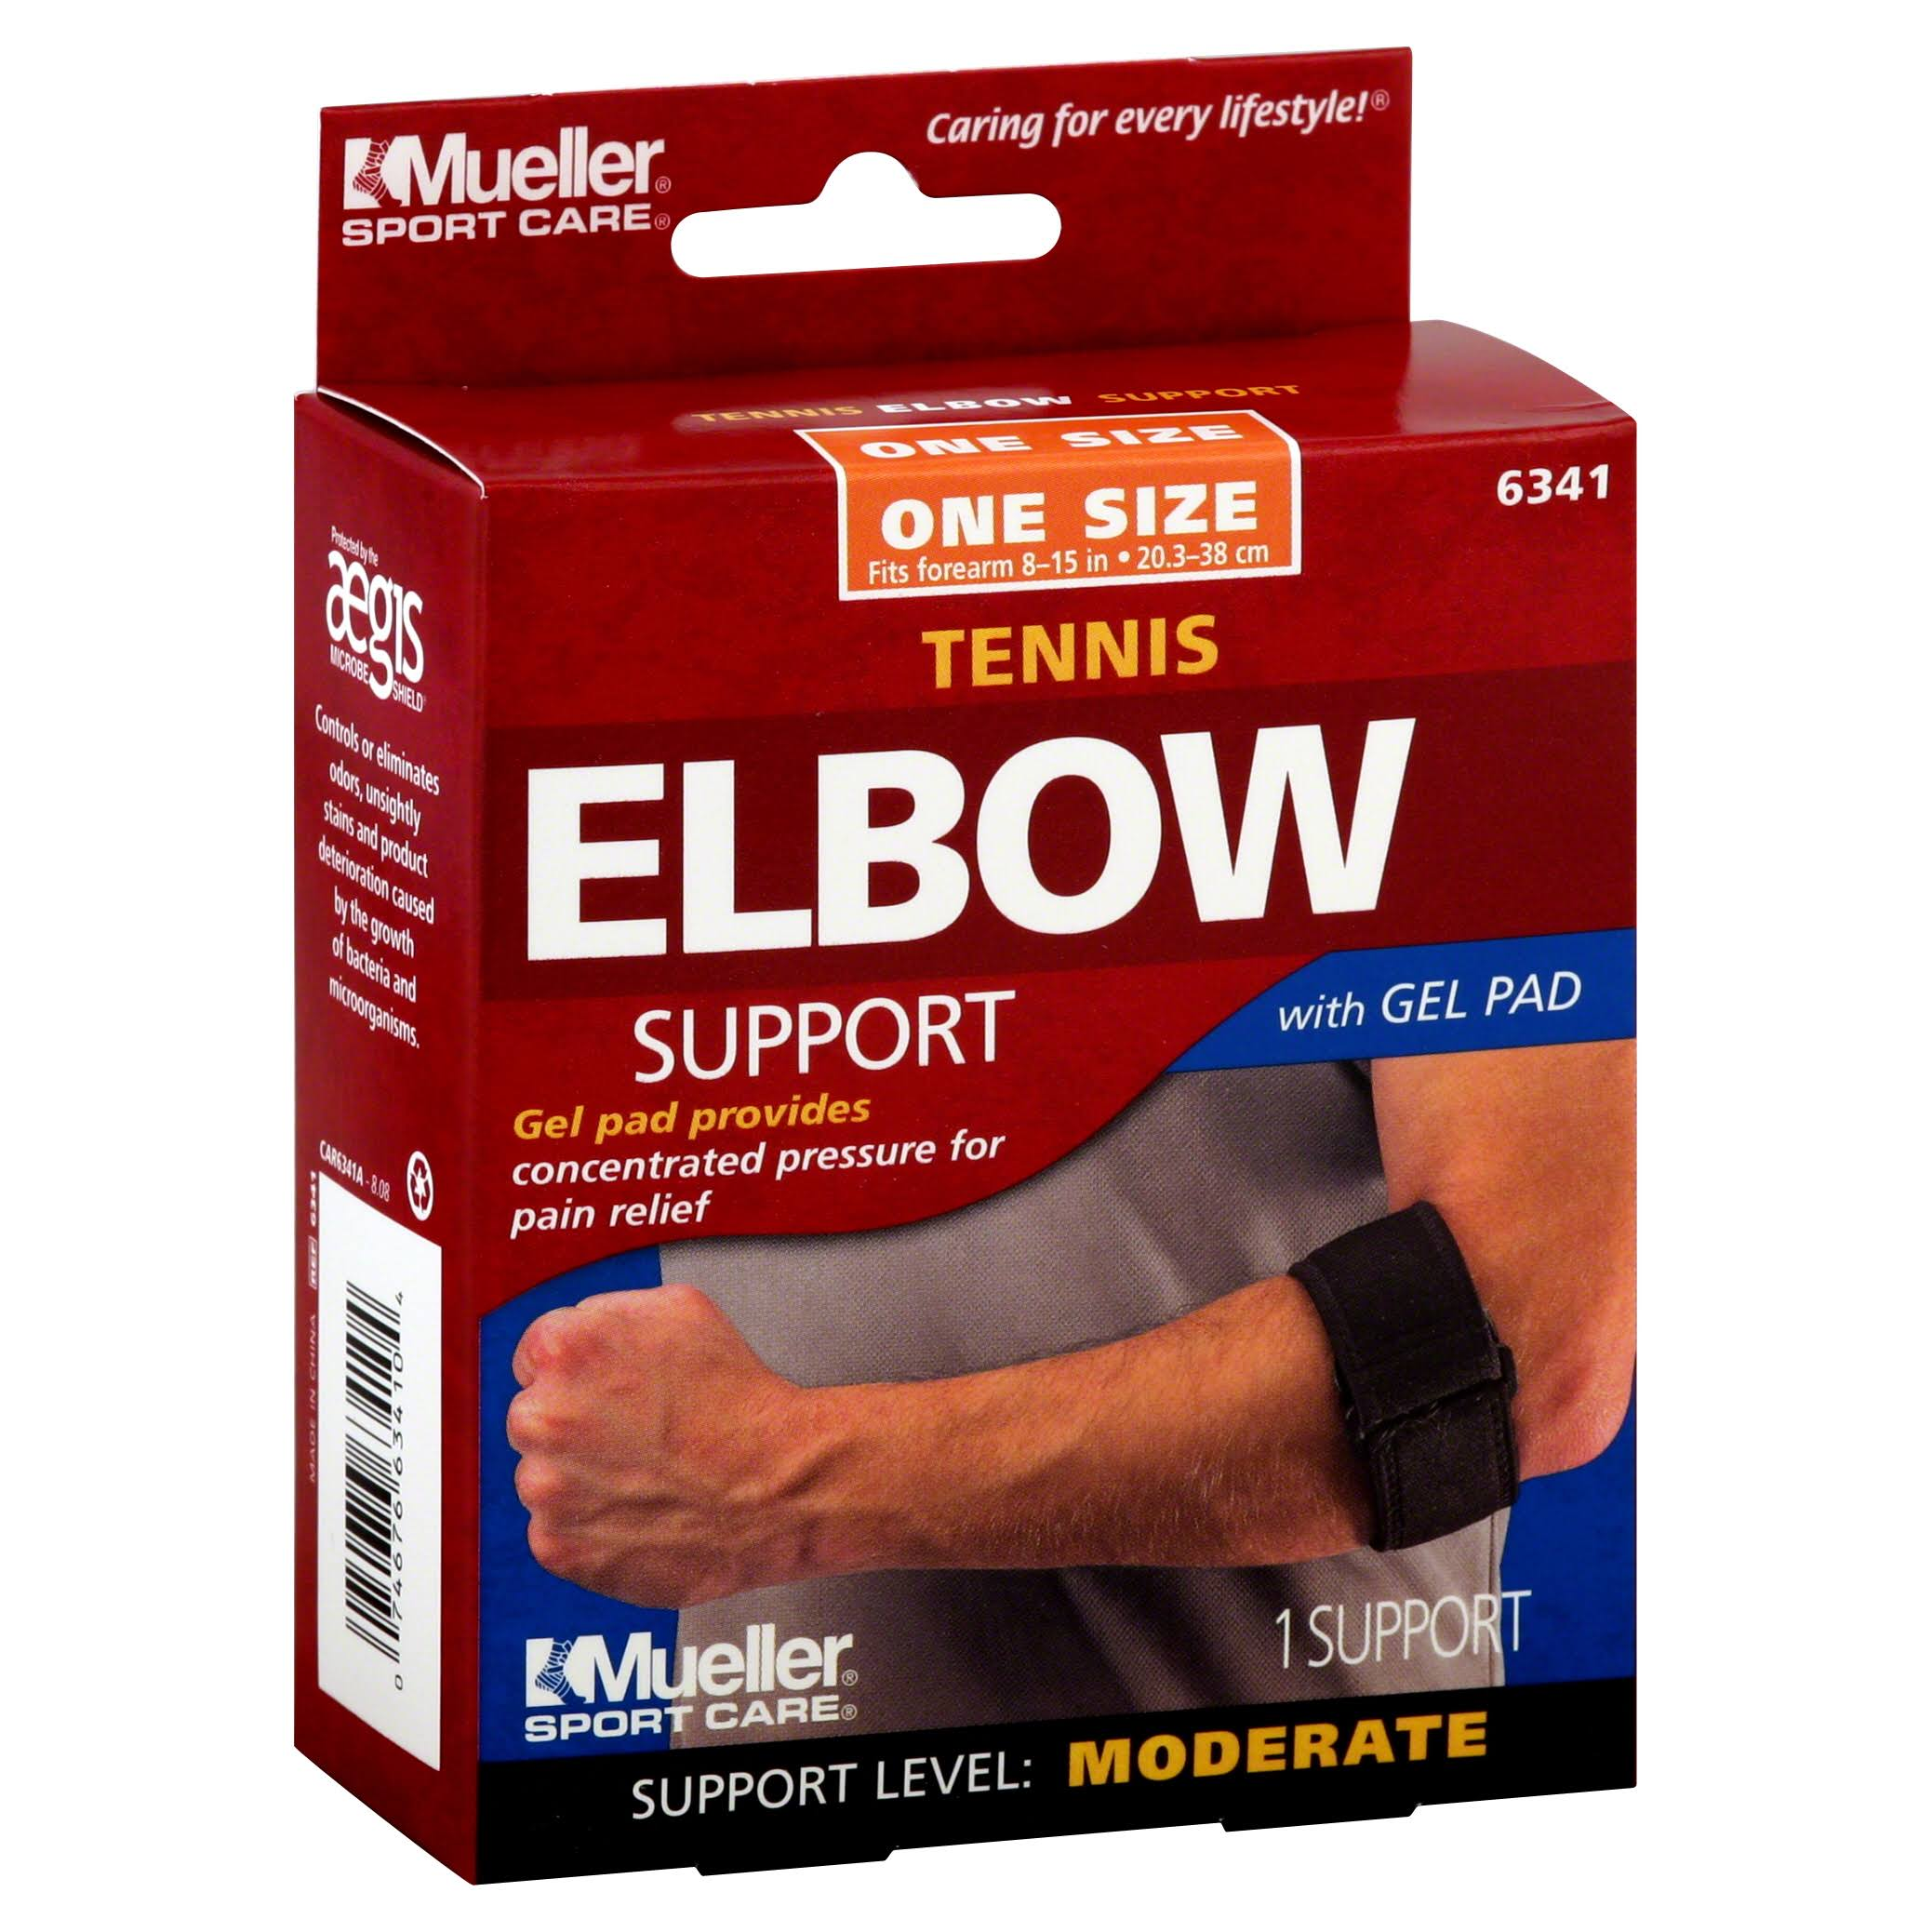 Mueller 6341 Tennis Elbow Support - with Gel Pad, One Size